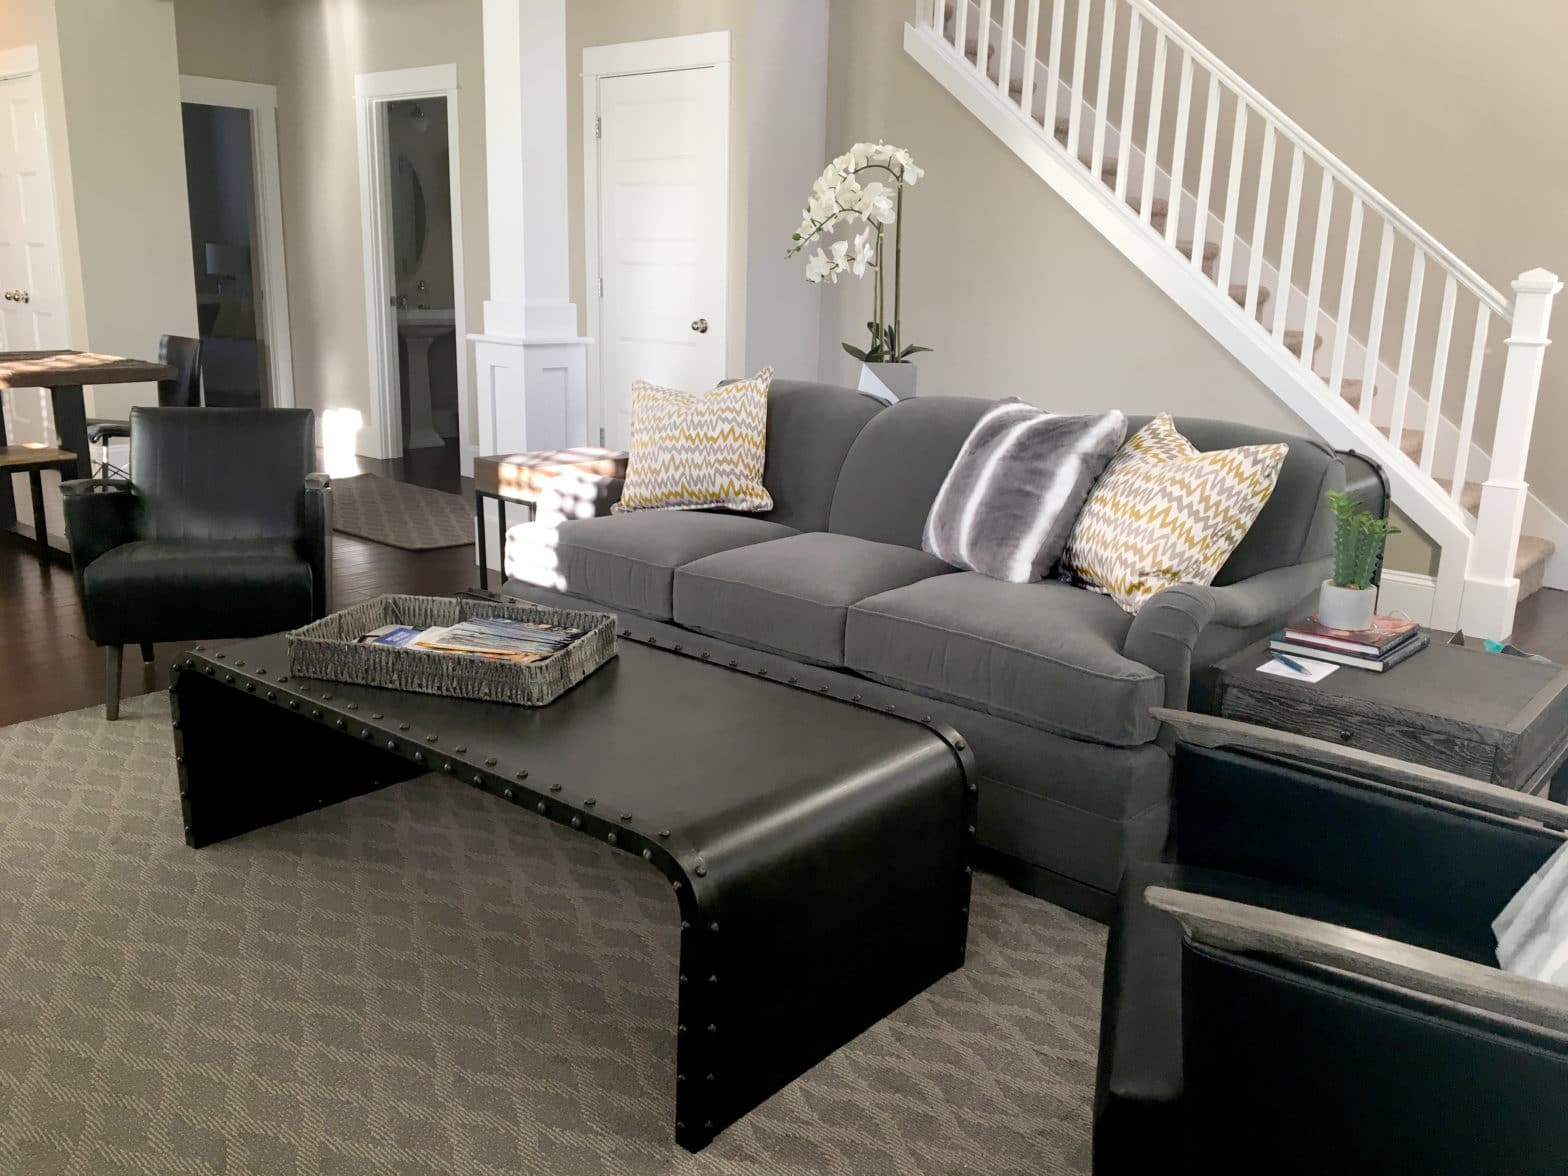 Living Room design in vacation home In st. johns